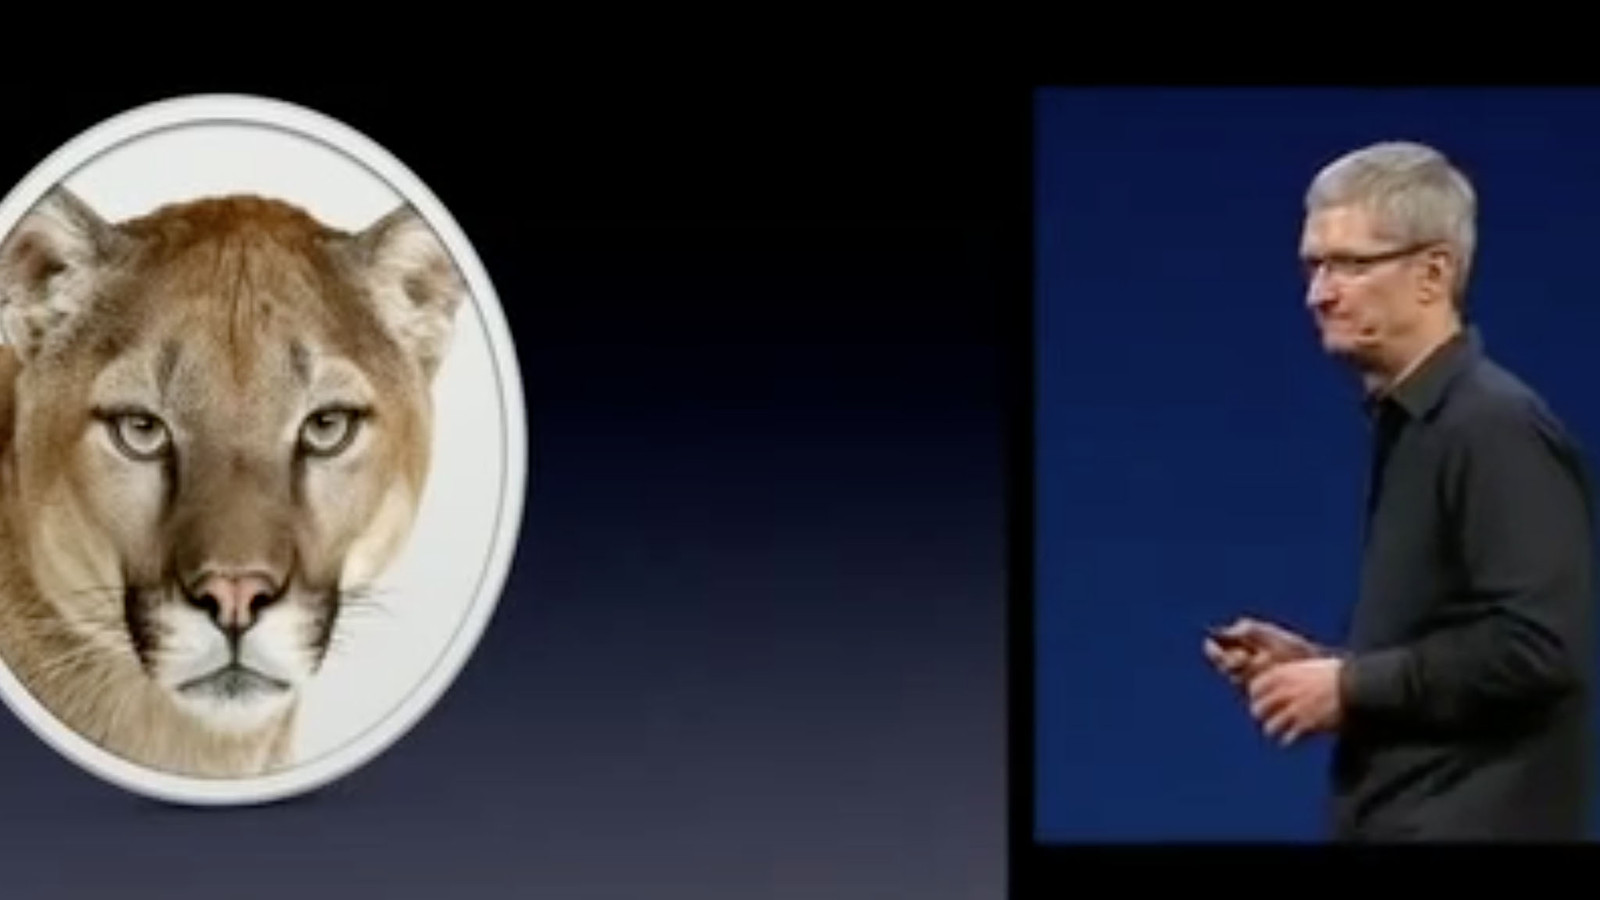 WWDC 2012 Flashback: Mountain Lion, iOS 6 and the radical new Retina MacBook Pro